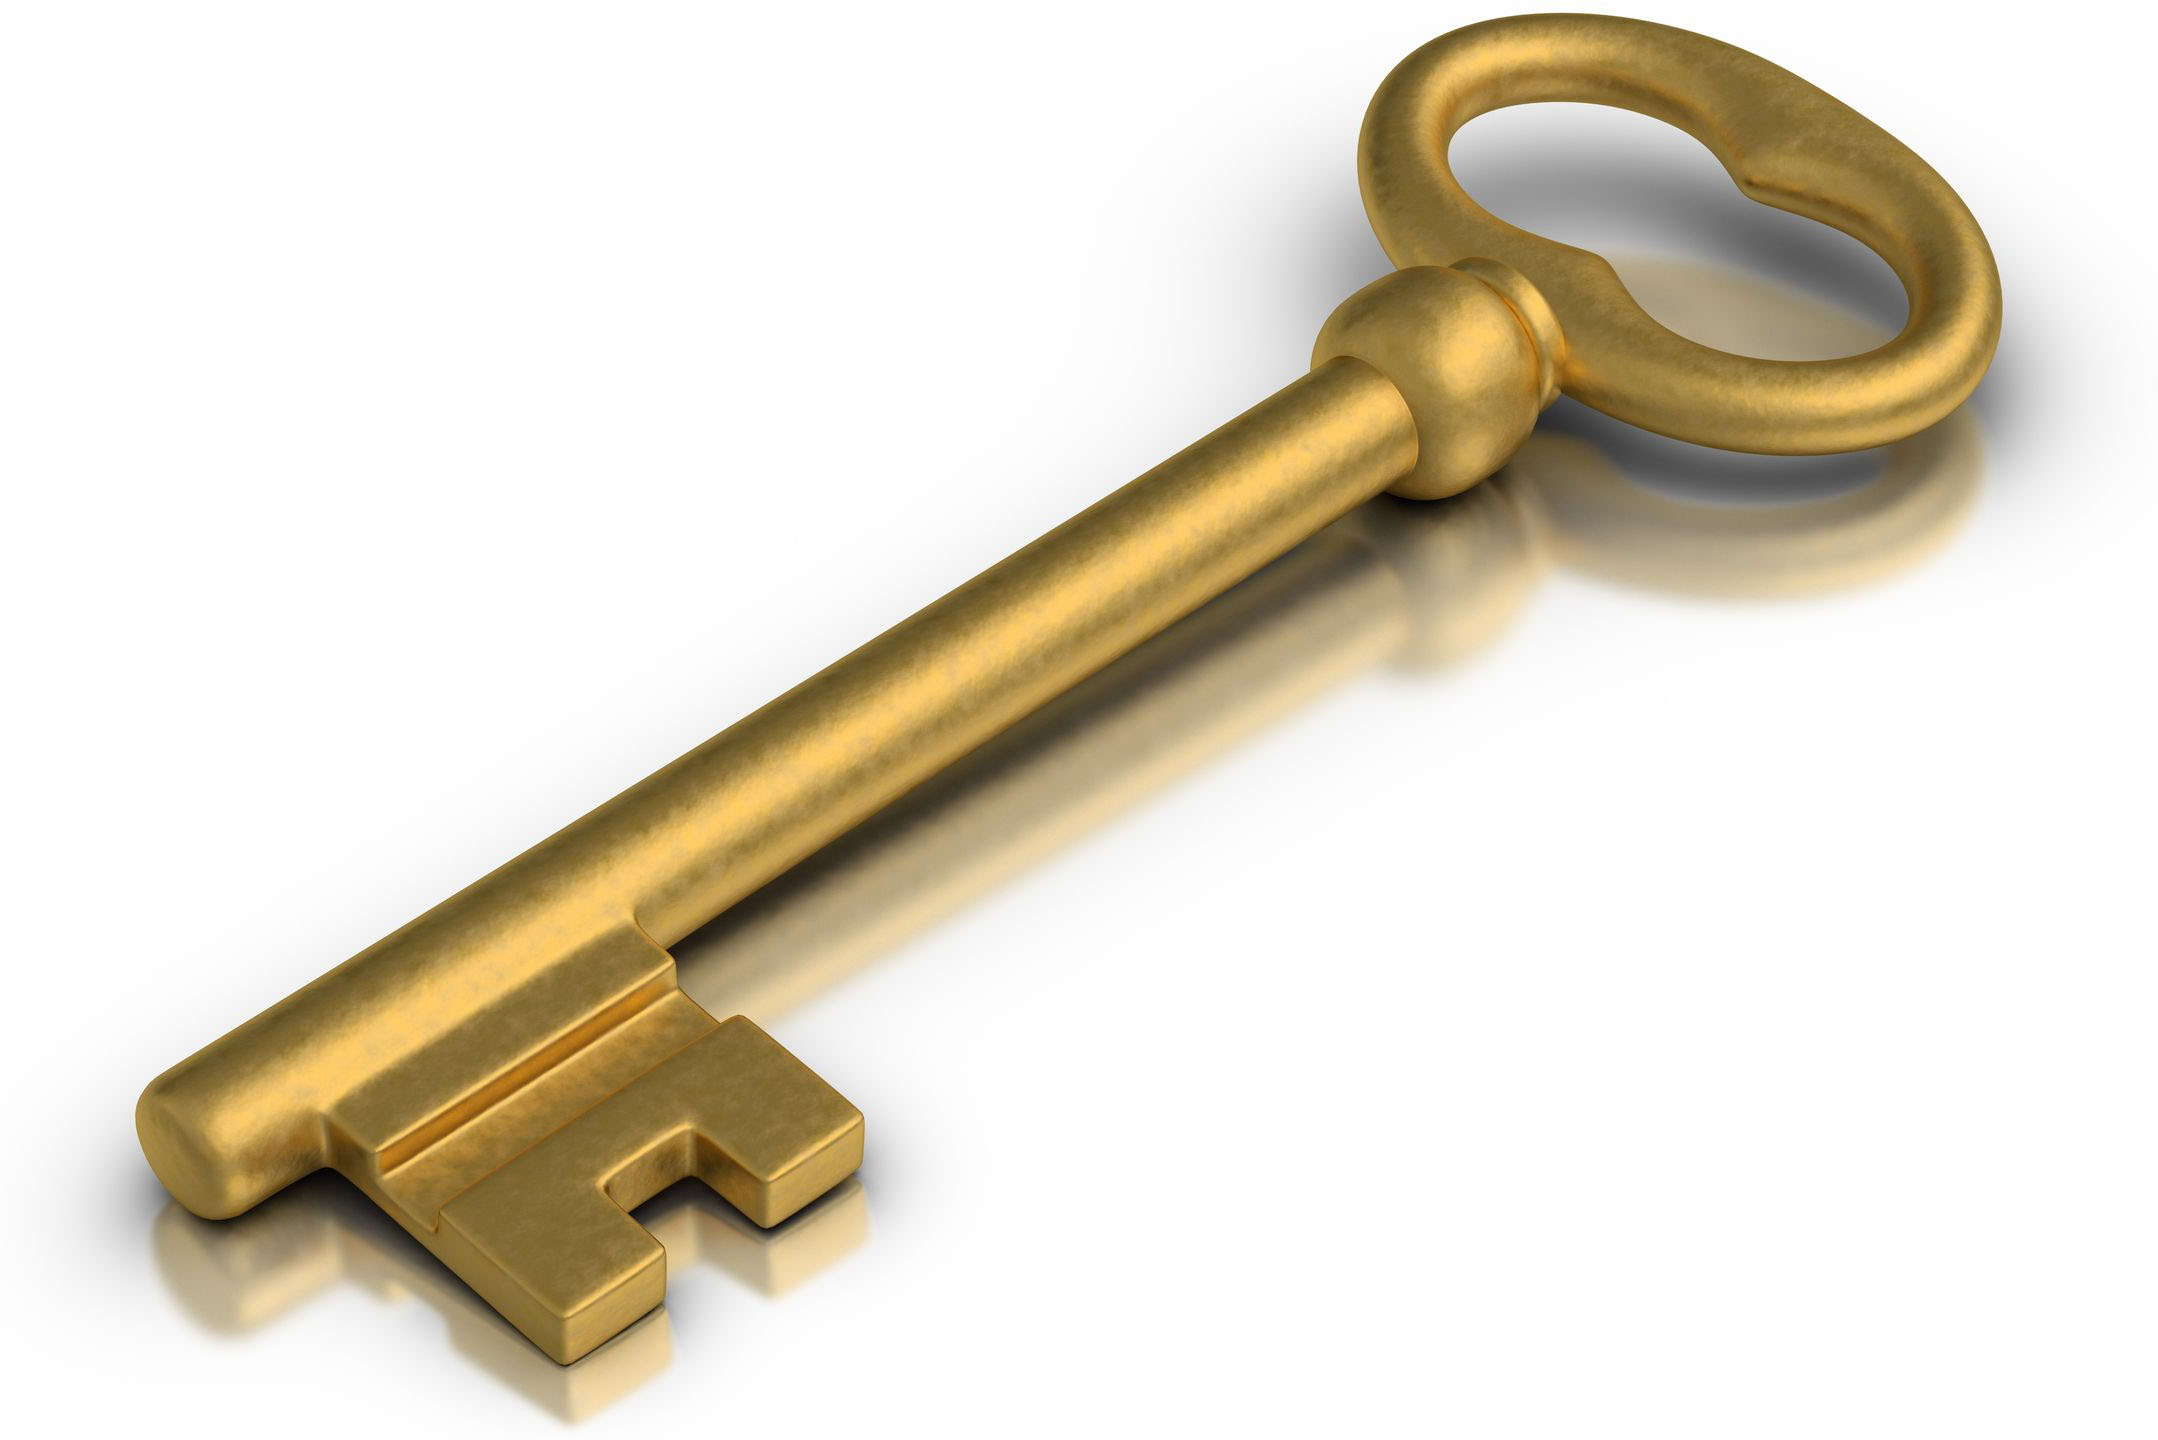 Golden Key - LIBERTY (SECURITY PRIVACY SAFETY) FREE WILL - UNIVERSAL SPENDING AUTHORITY - PRIVATE PROPERTY - FREE LAND - THERE IS NO GOVERNMENT